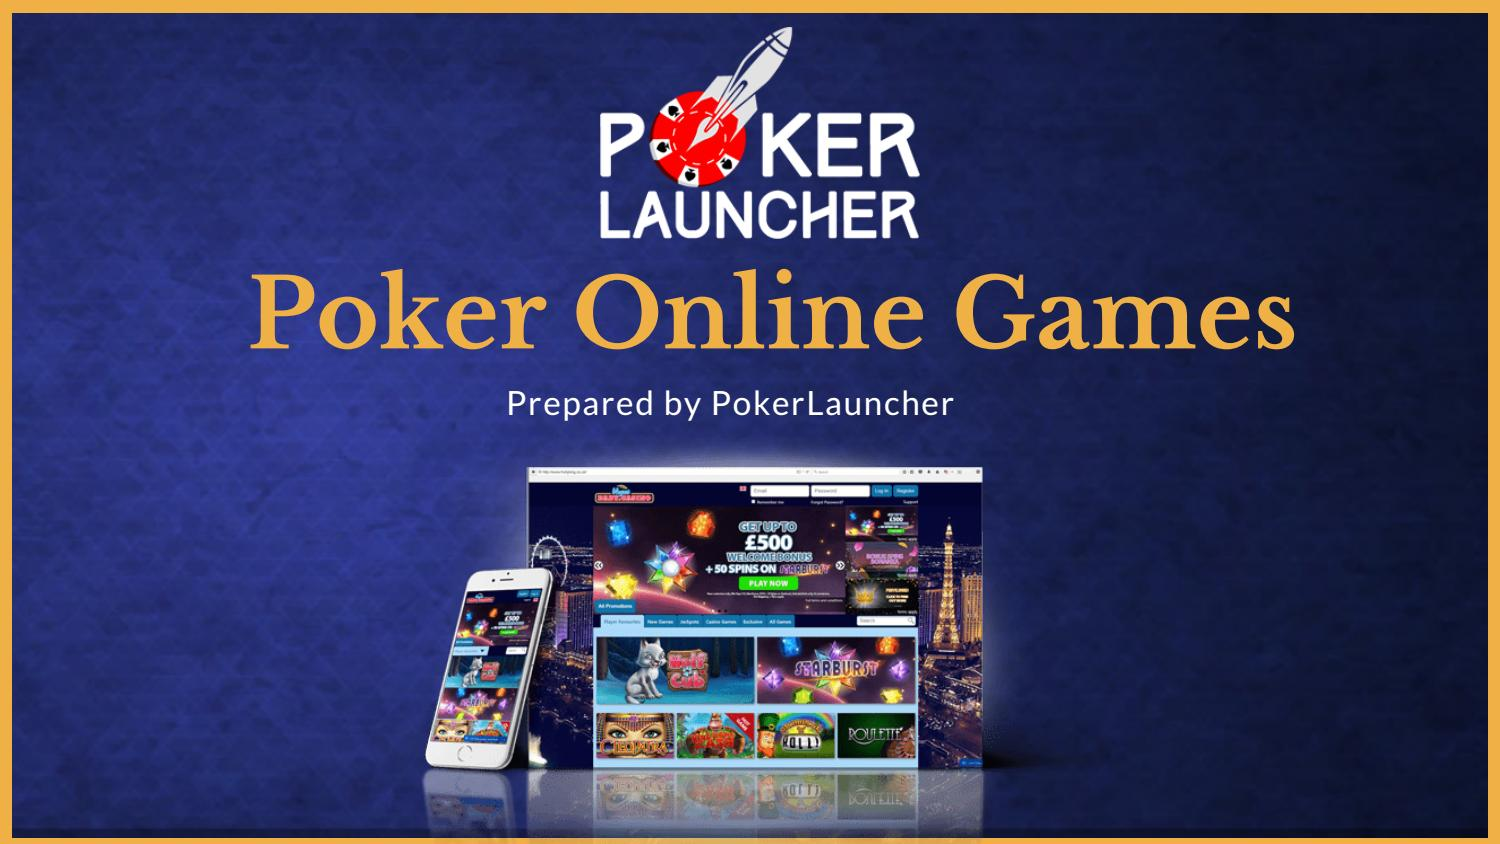 Where to play poker online, free